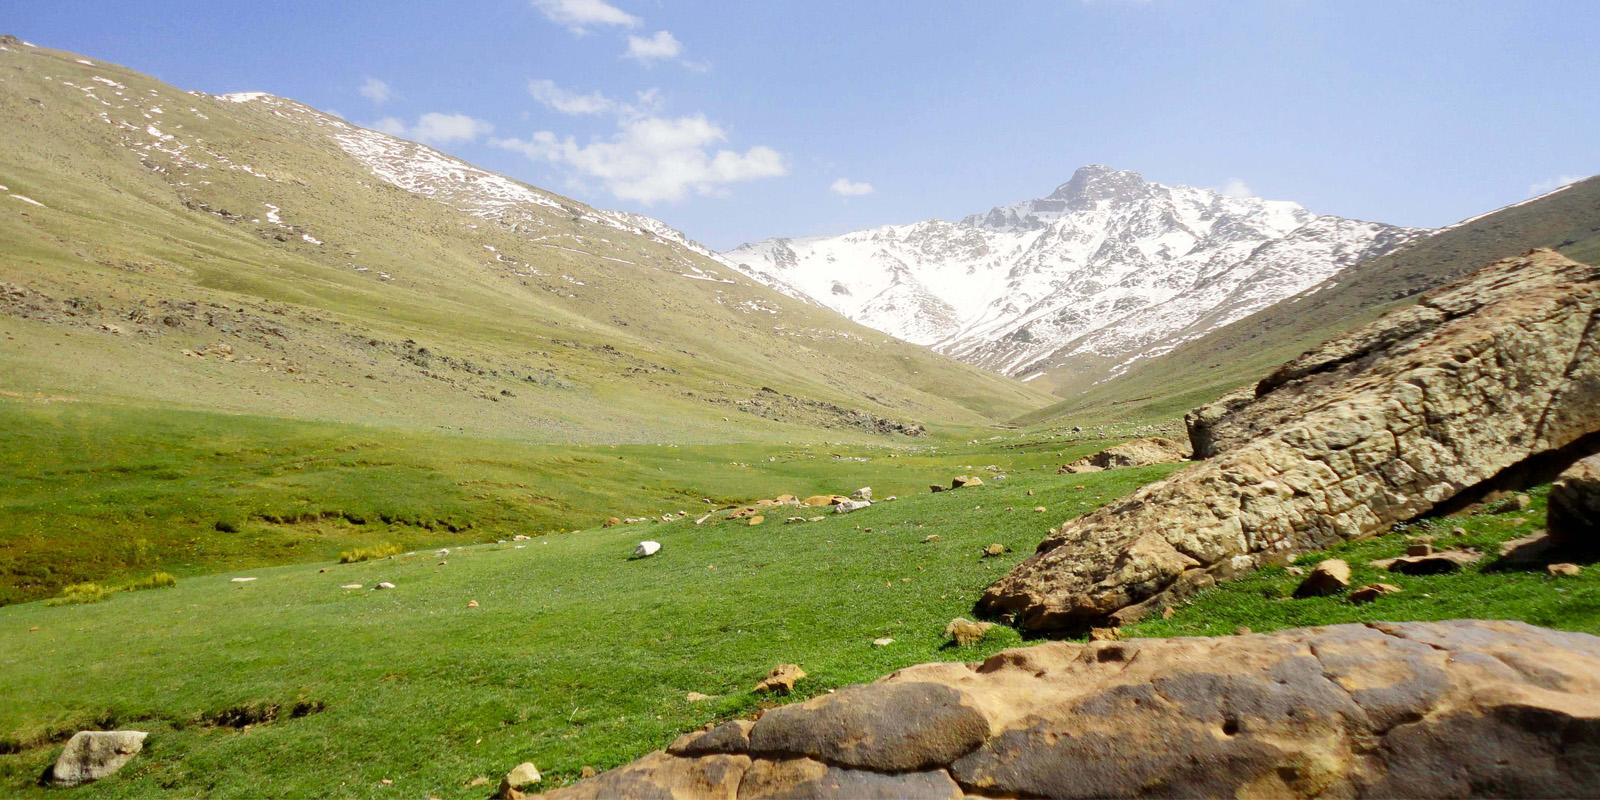 3 Valleys : Tahannaout, Asni and Ourika | Maroc Excursion